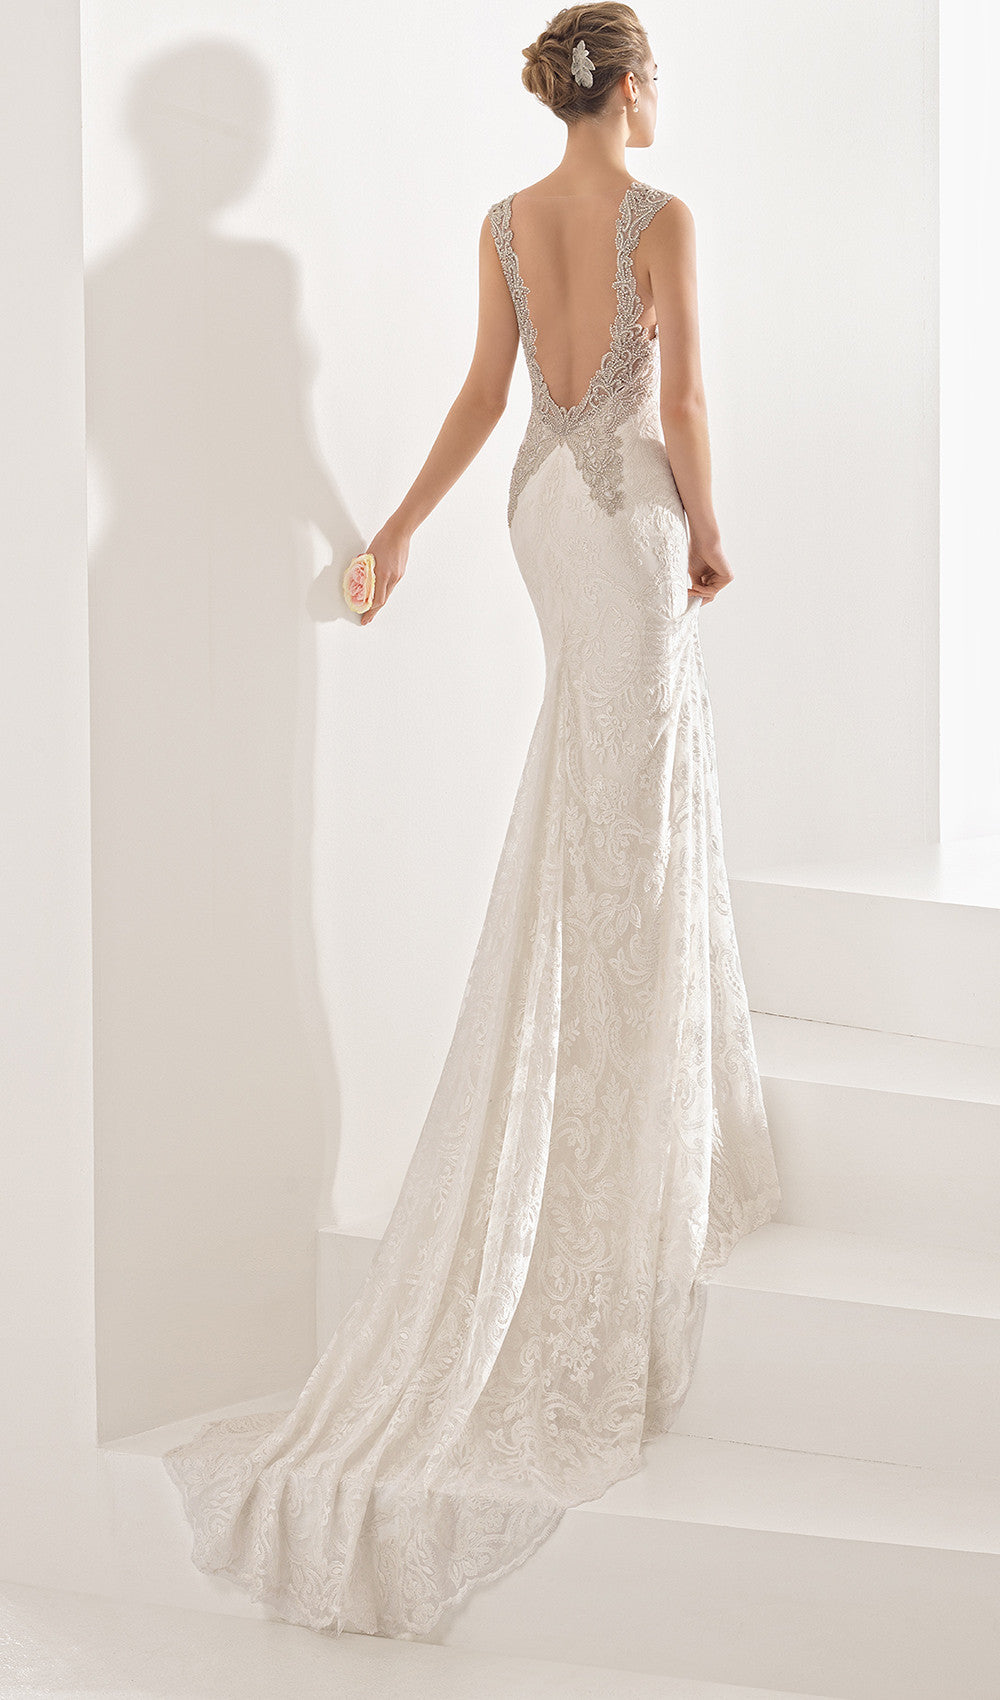 Rosa Clara - STYLE NAGORE | Schaffer's Bridal in Des Moines, Iowa and Scottsdale, Arizona.